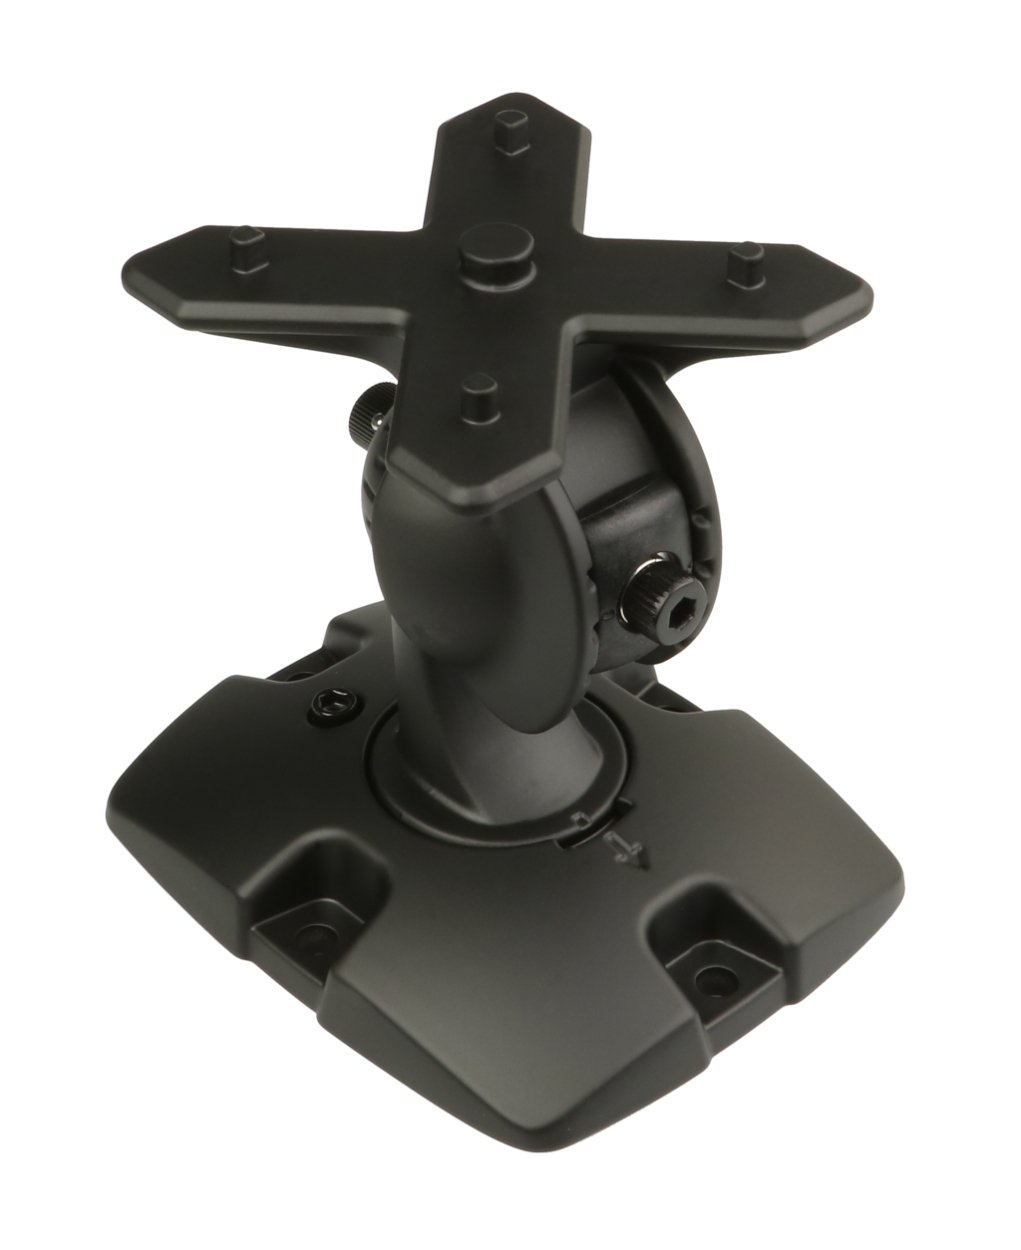 Black Mount Assembly for AD-S8T, AD-S10T, and AD-S12